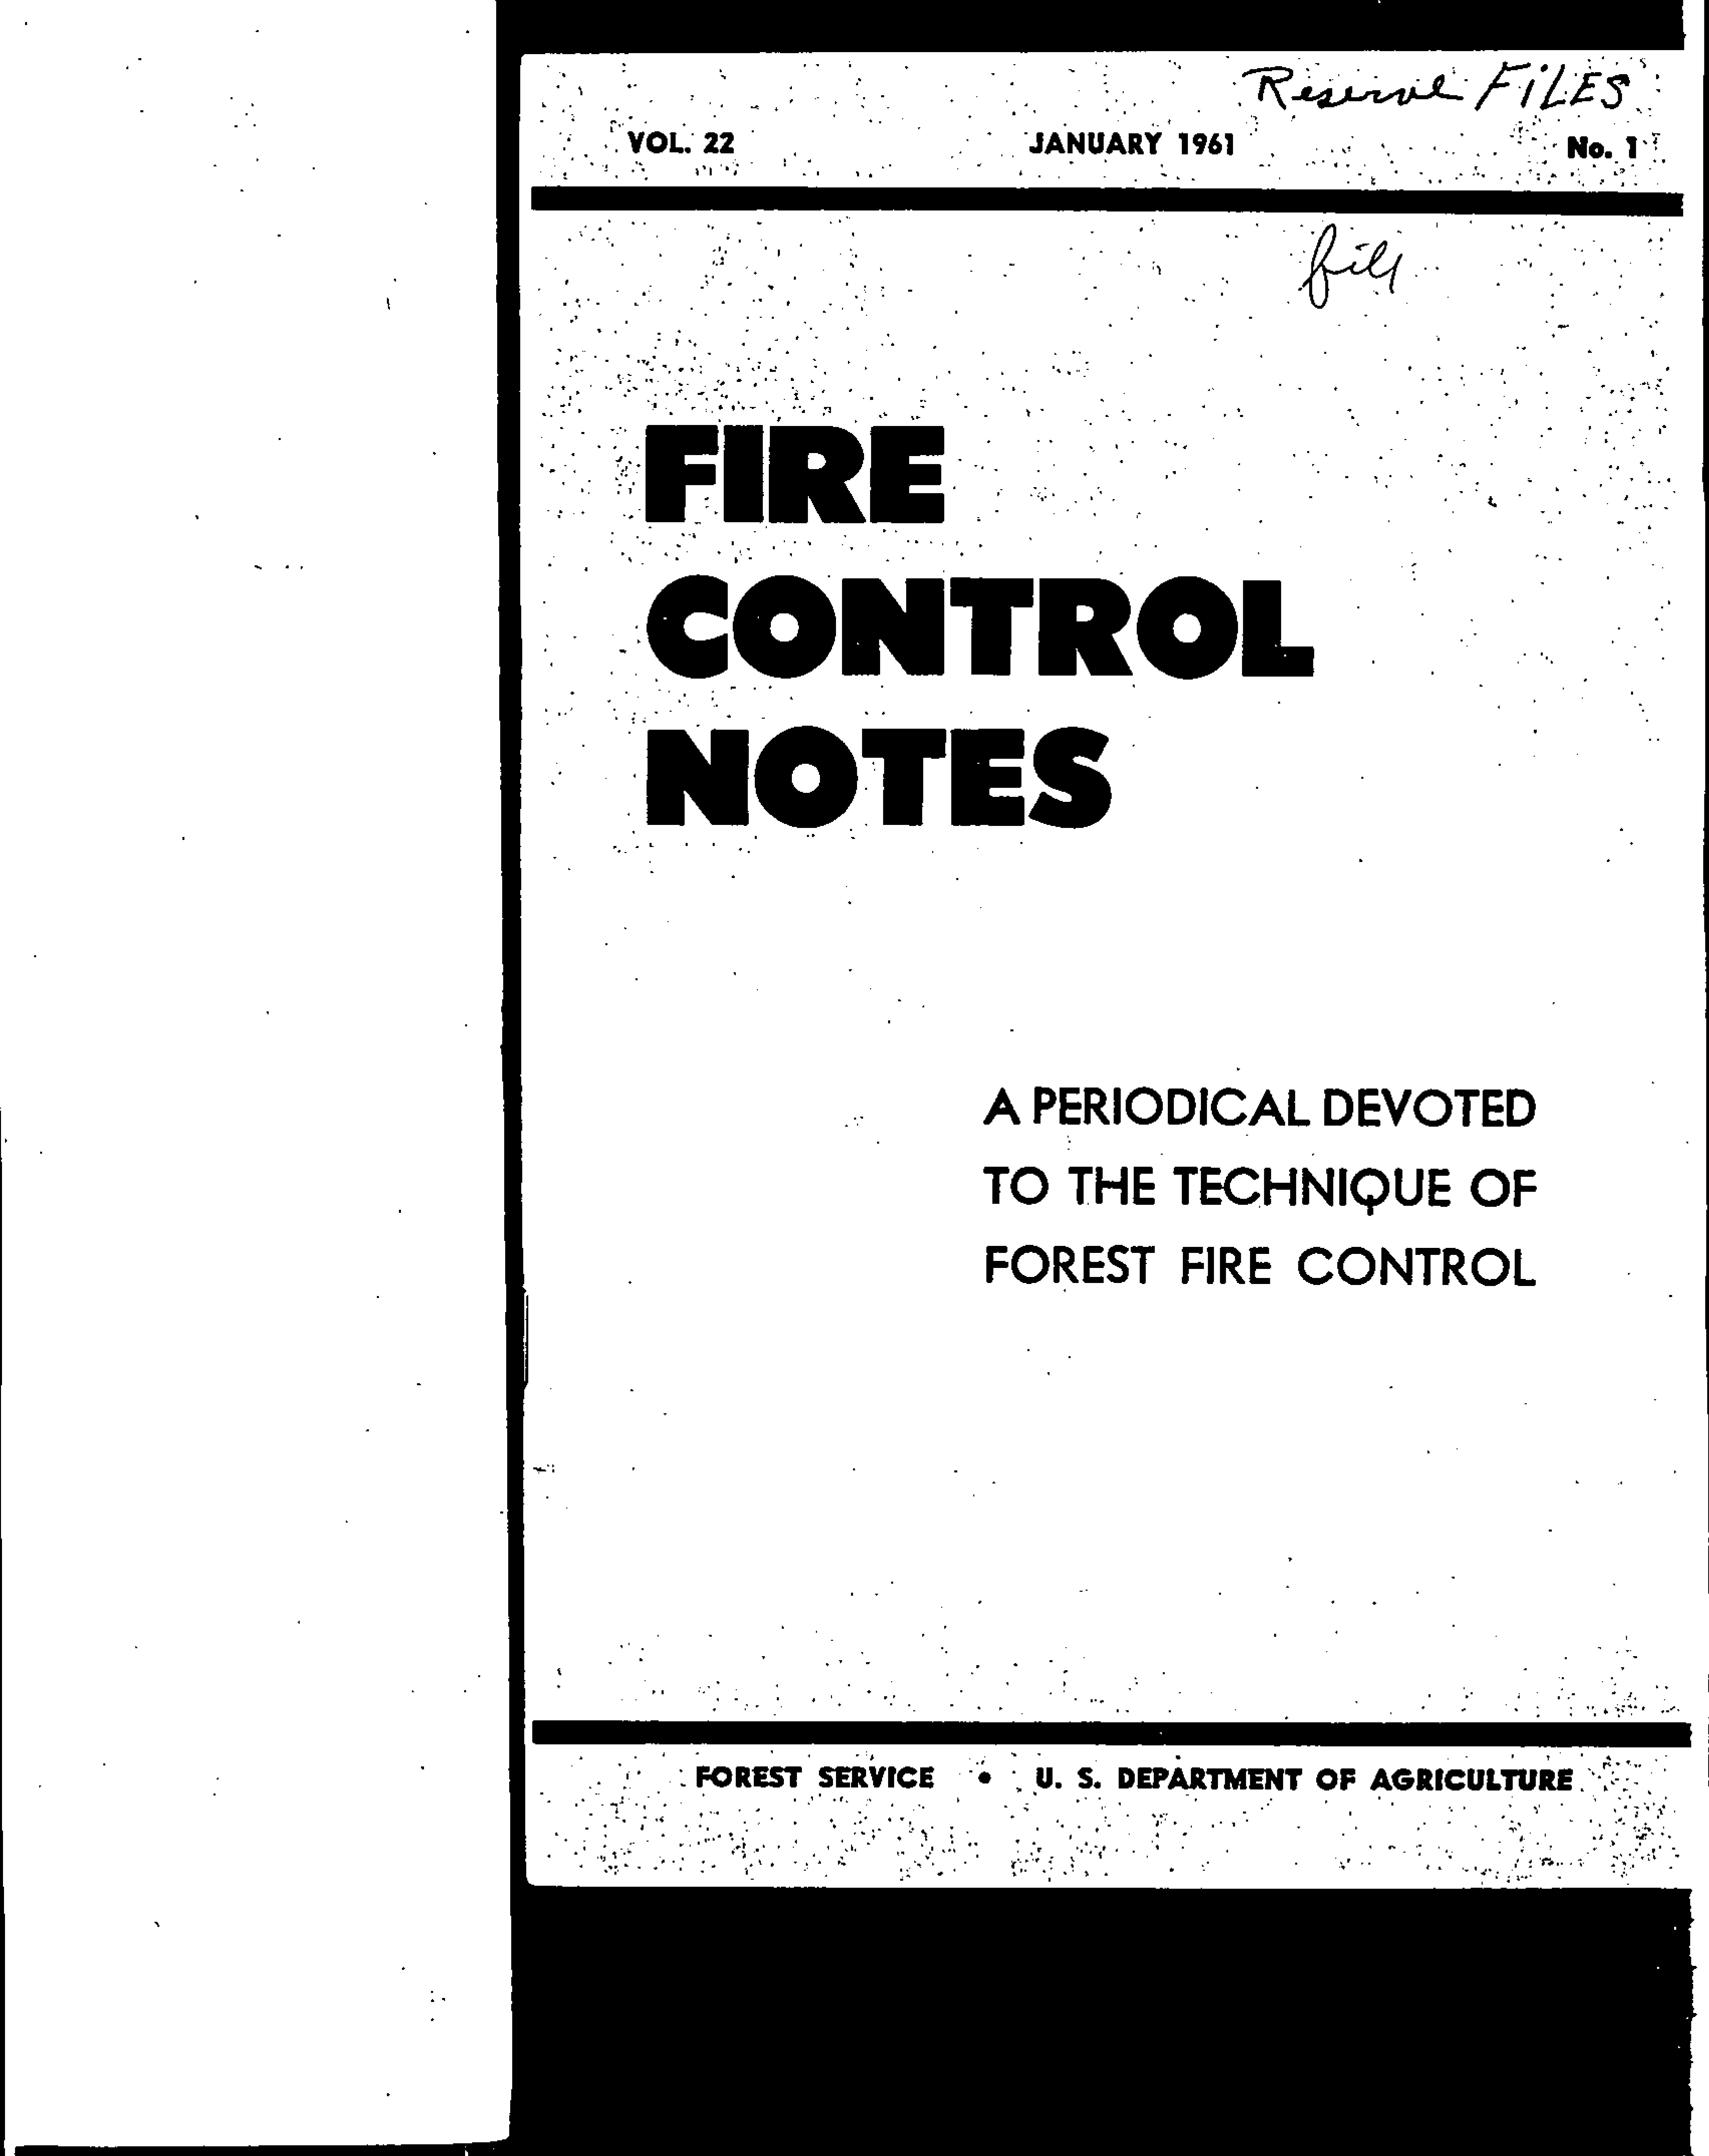 Cover of Fire Management Today Volume 22, Issue 01